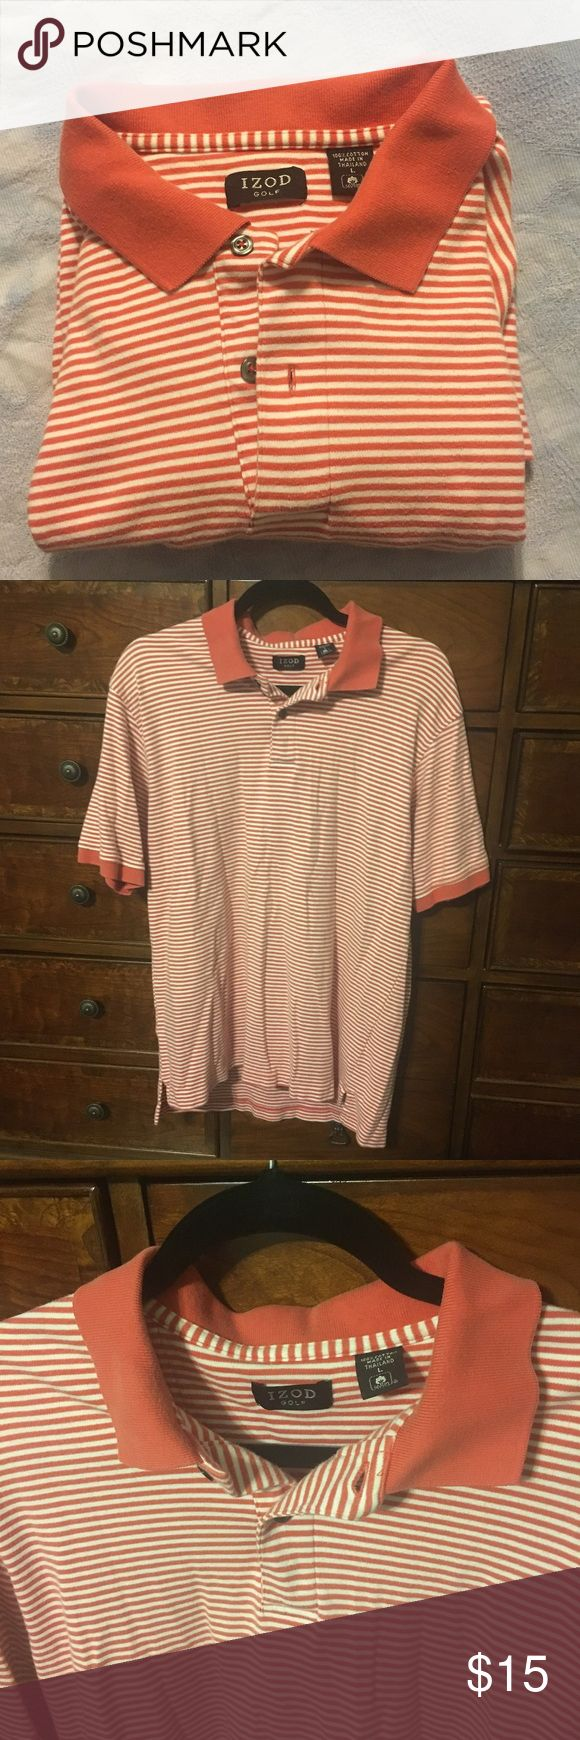 Izod Polo Salmon Stripe Men's Shirt L IZOD polo collared shirt, size large. Salmon color with white stripes. Very soft, great condition. For some reason my phone camera made the color look dull in some of the pictures, but it is actually the most like the first picture, a bright salmon color or light burnt orange. Just doesn't fit my husband anymore! Bundle away, y'all--makes for great presents! Izod Shirts Polos